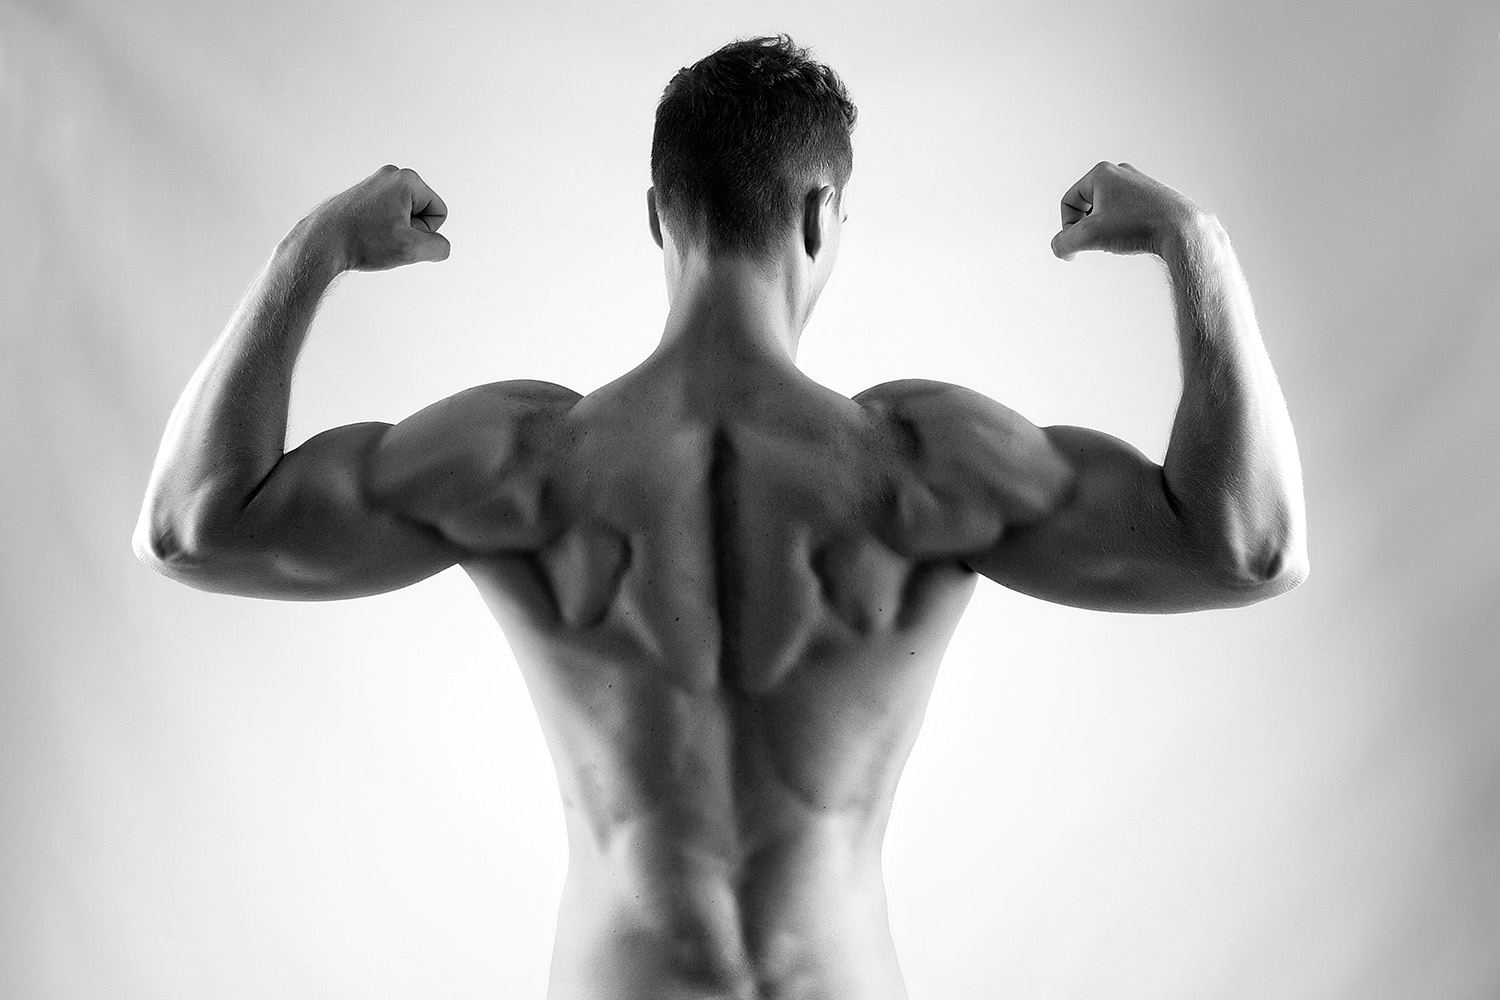 Watch The Best Back Exercises To Build Muscle video